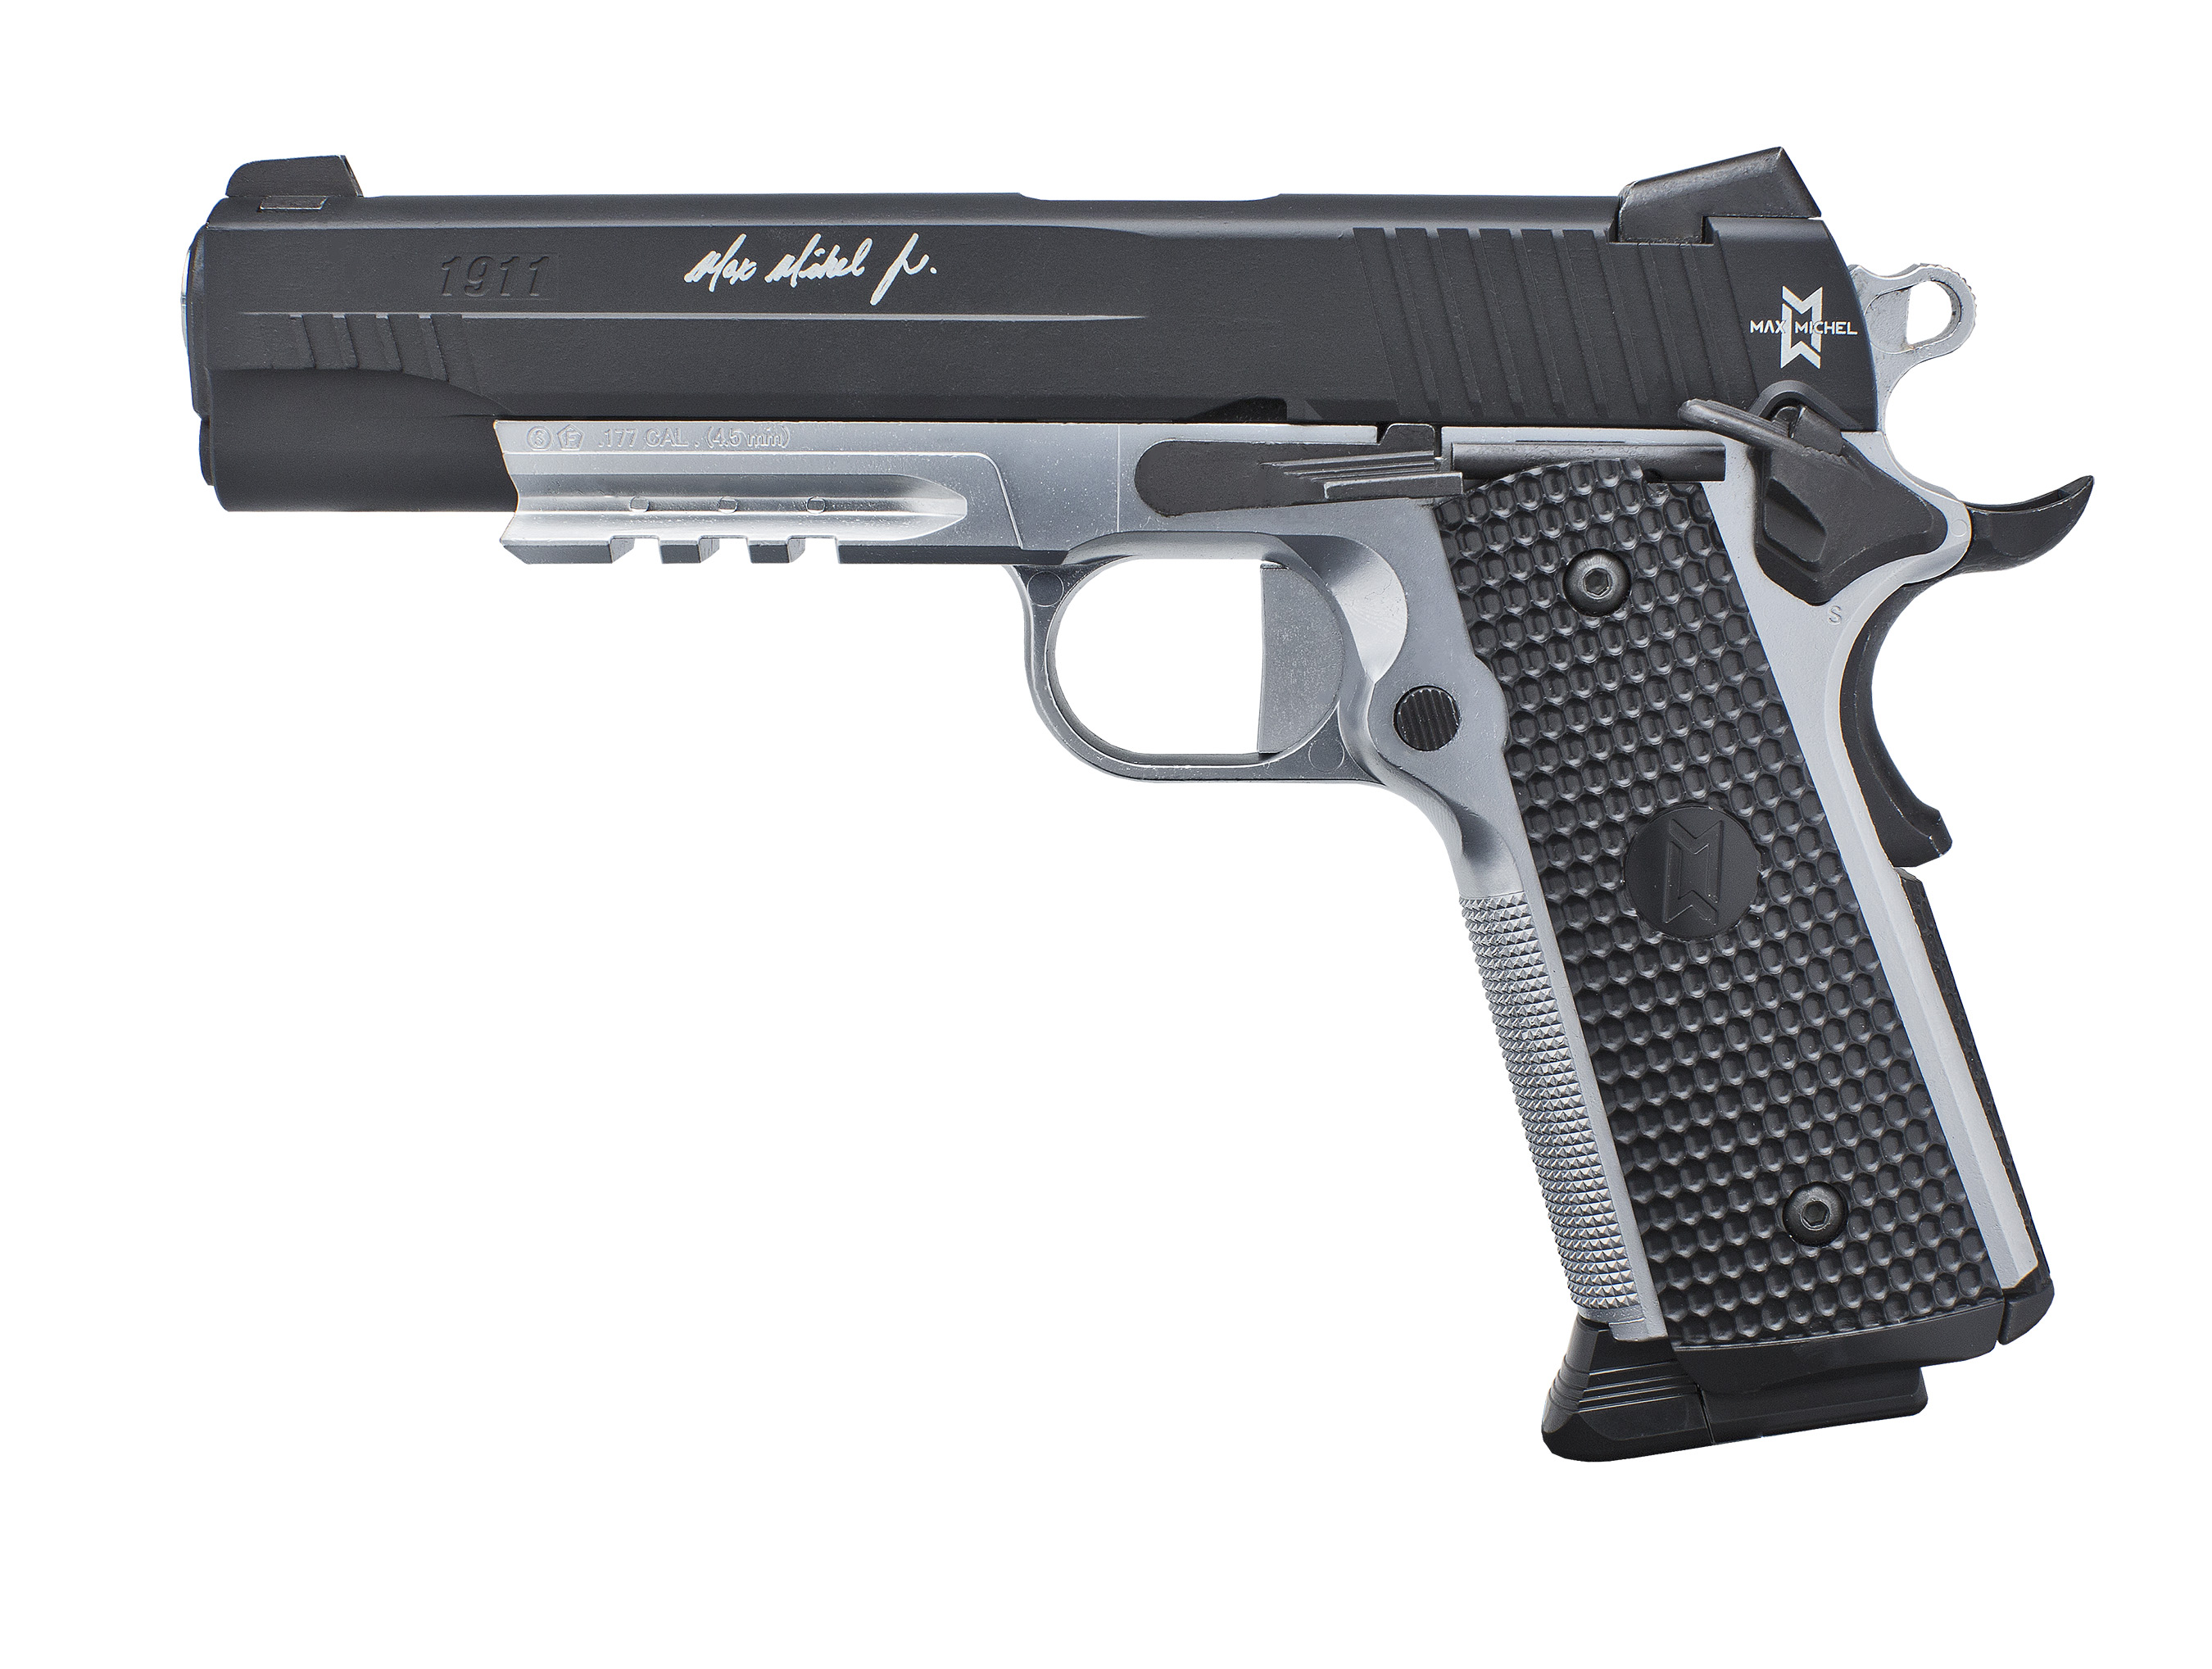 Sig sauer releases new 1911 style bb pistol outdoorhub for Www bb